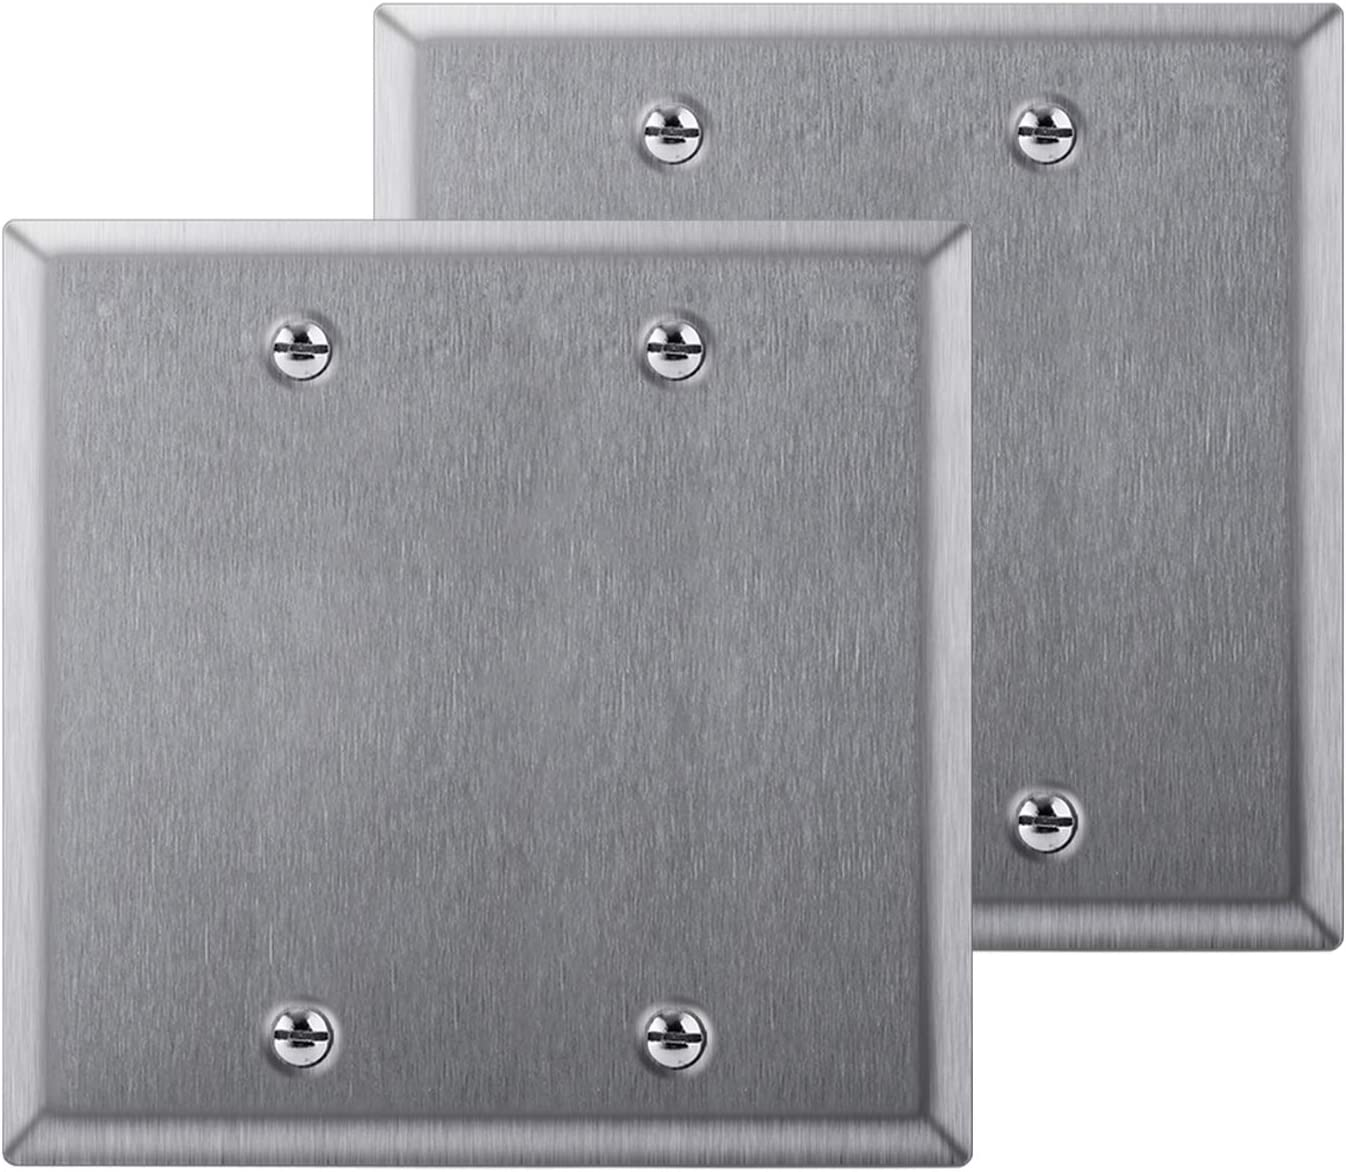 [2 Pack] BESTTEN 2-Gang No Device Blank Metal Wall Plate, Anti-Corrosion Stainless Steel Outlet Cover, Industrial Grade 304SS, Standard Size, Screw Included, Silver